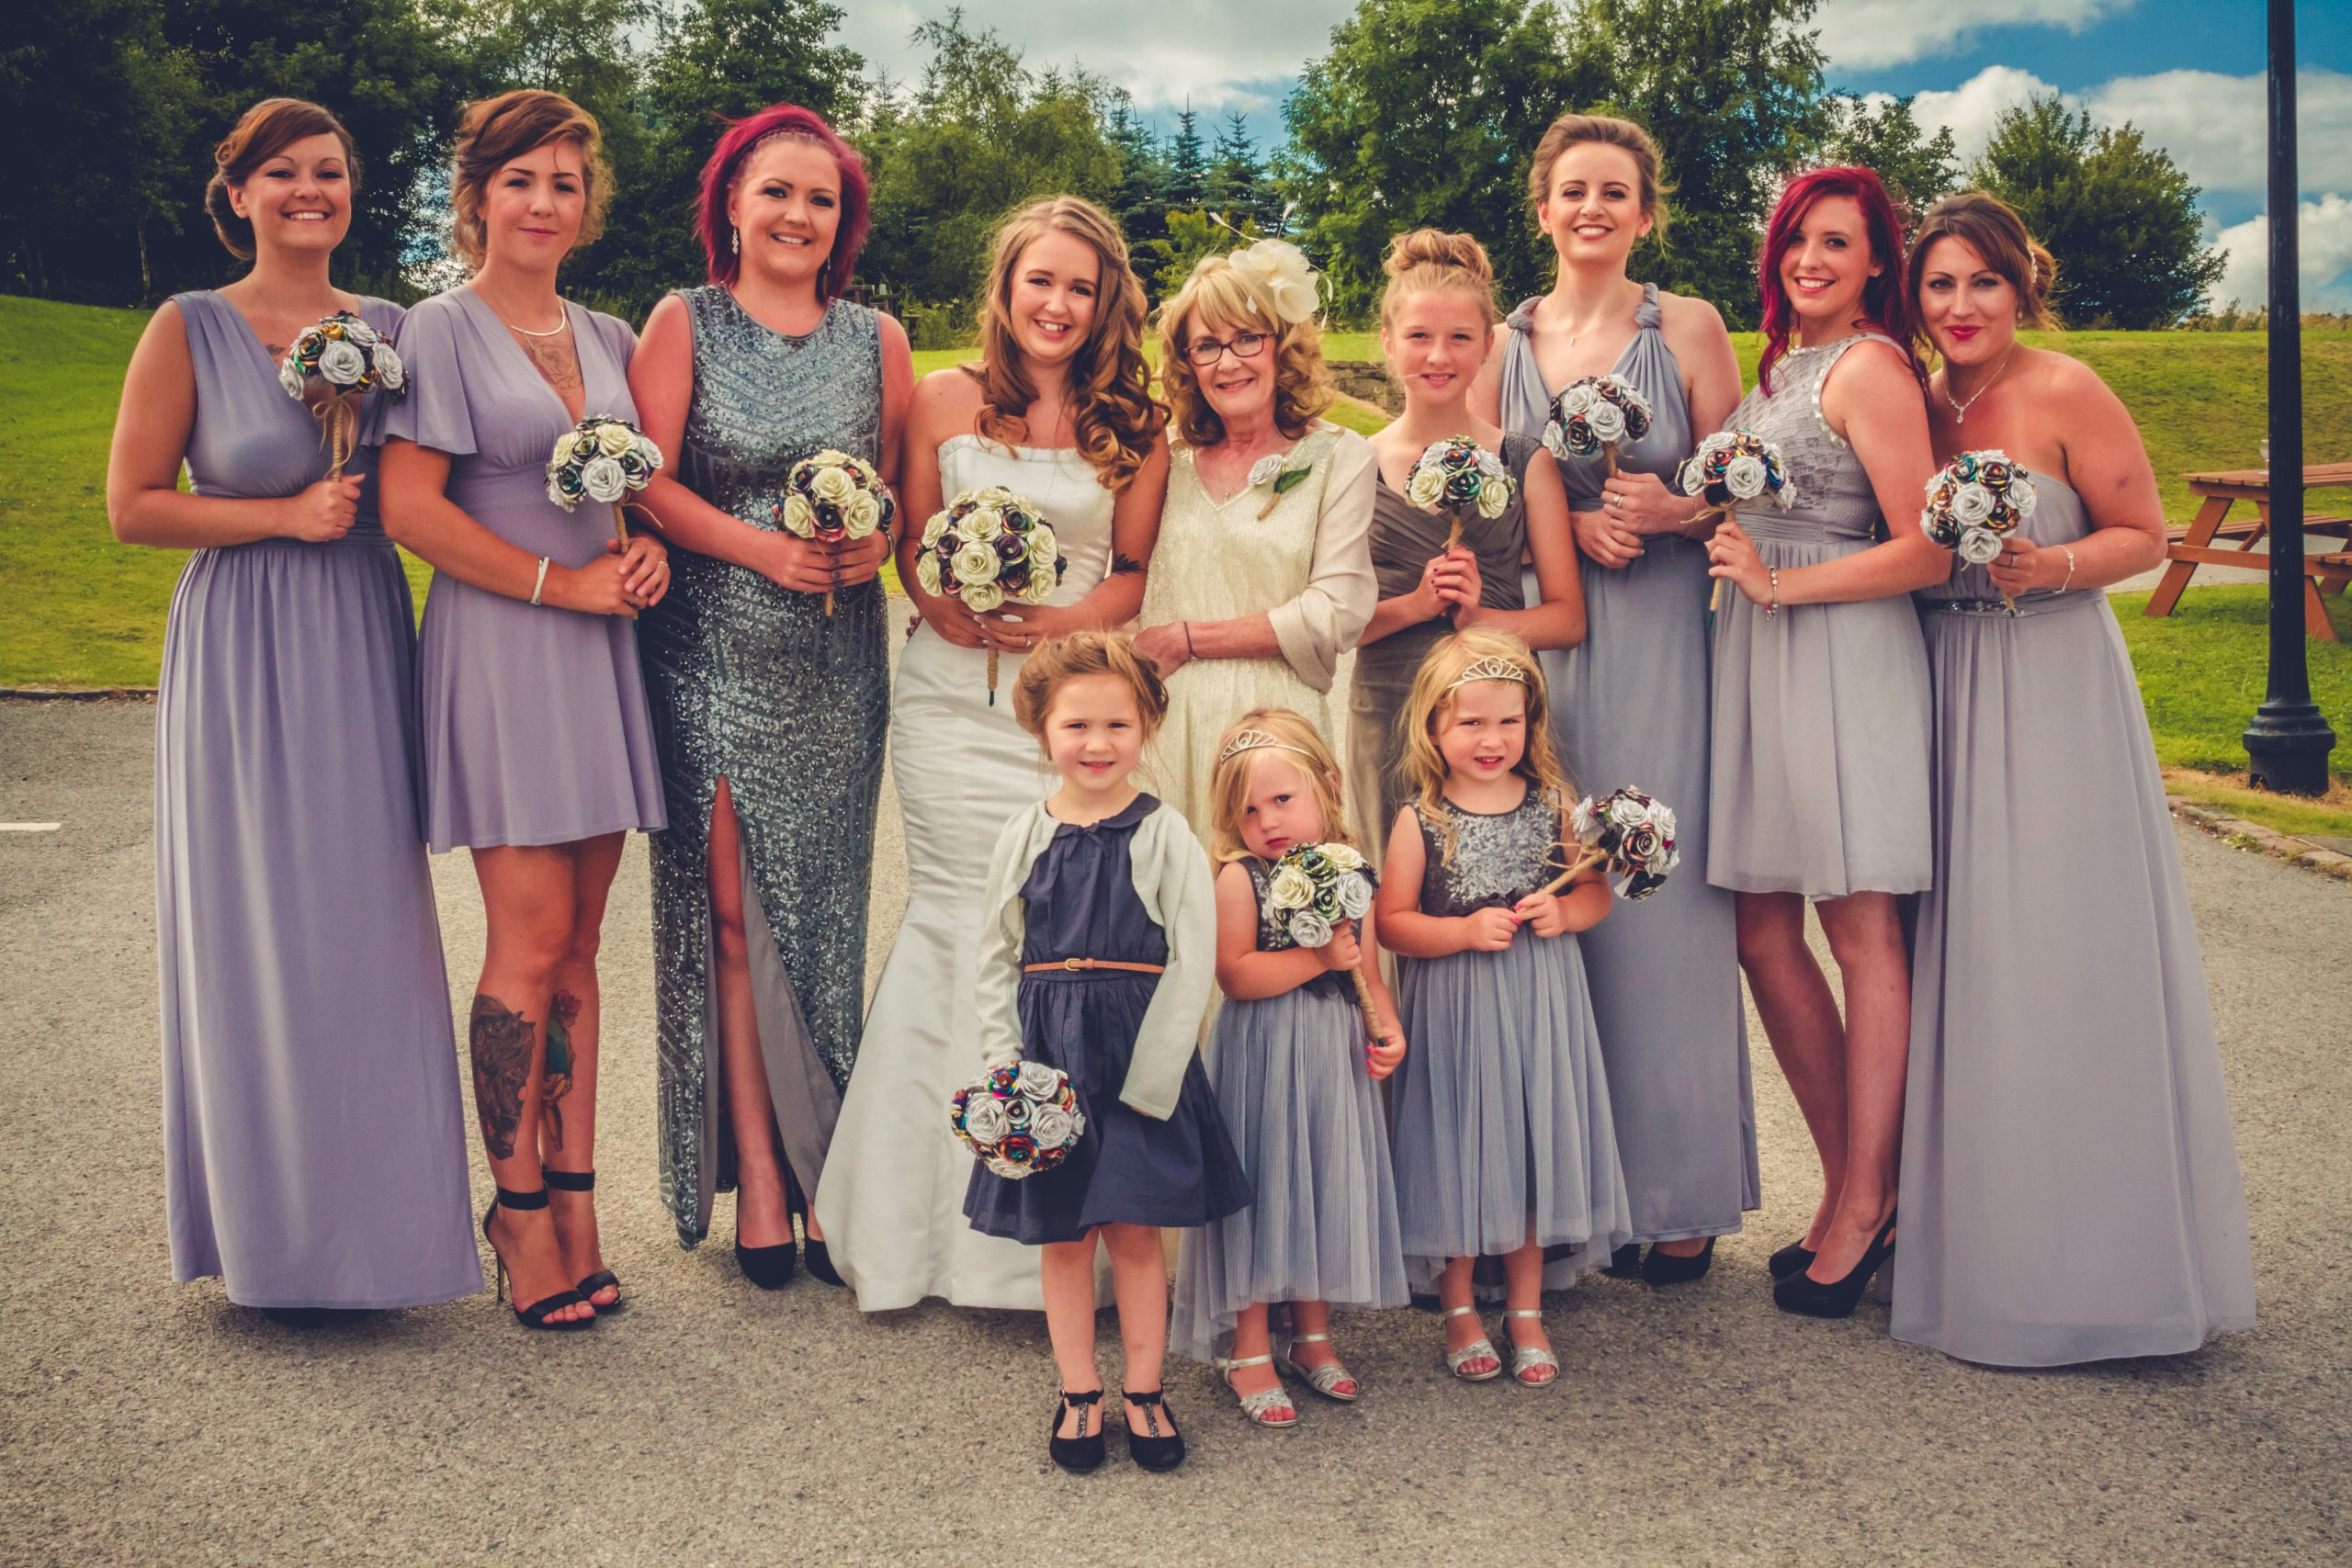 bridal party weddings on pudding pie hill